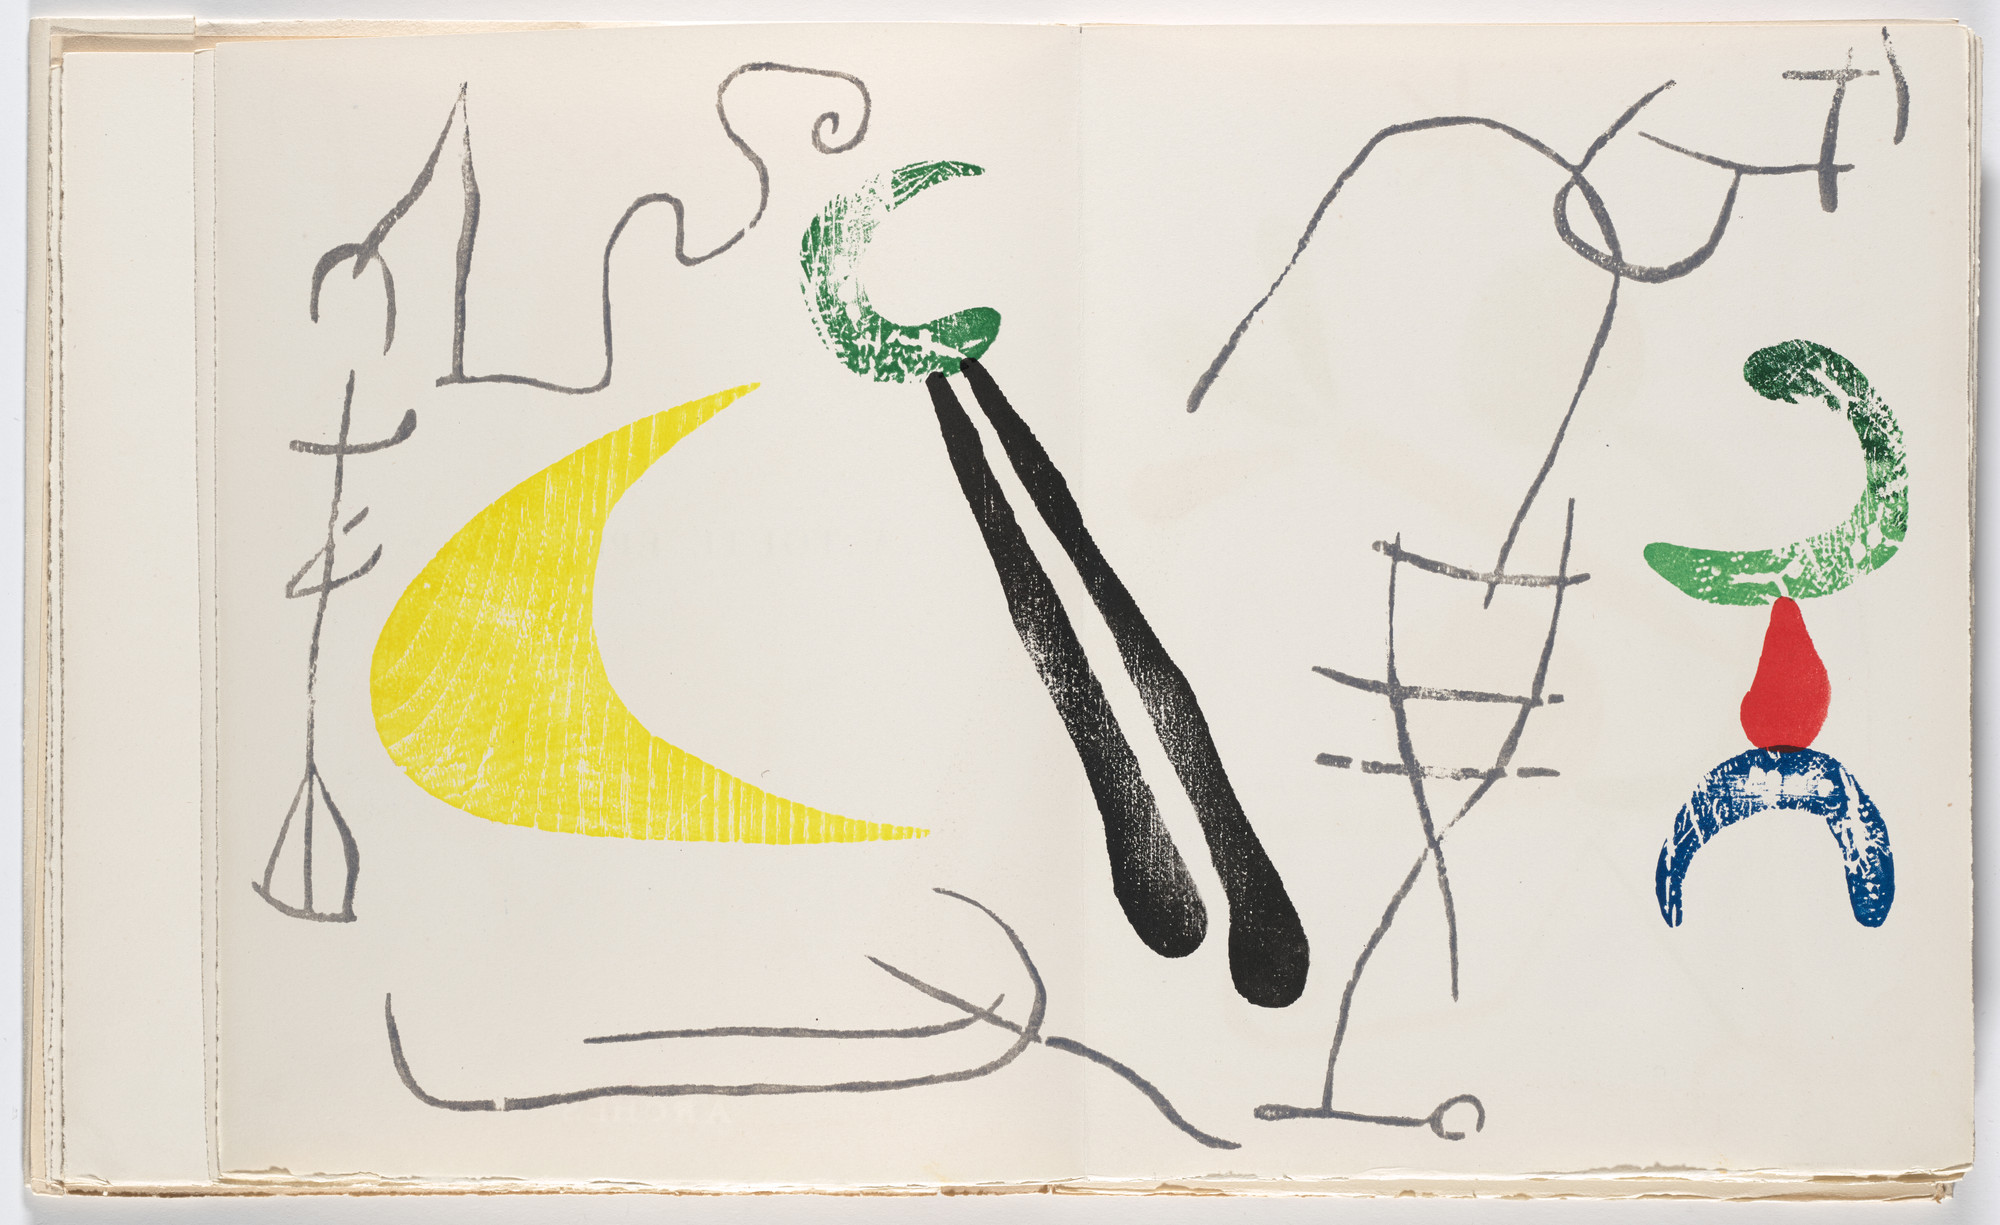 Joan Miró. Double page frontispiece from À toute épreuve (Proof Against All). 1947–58, published 1958